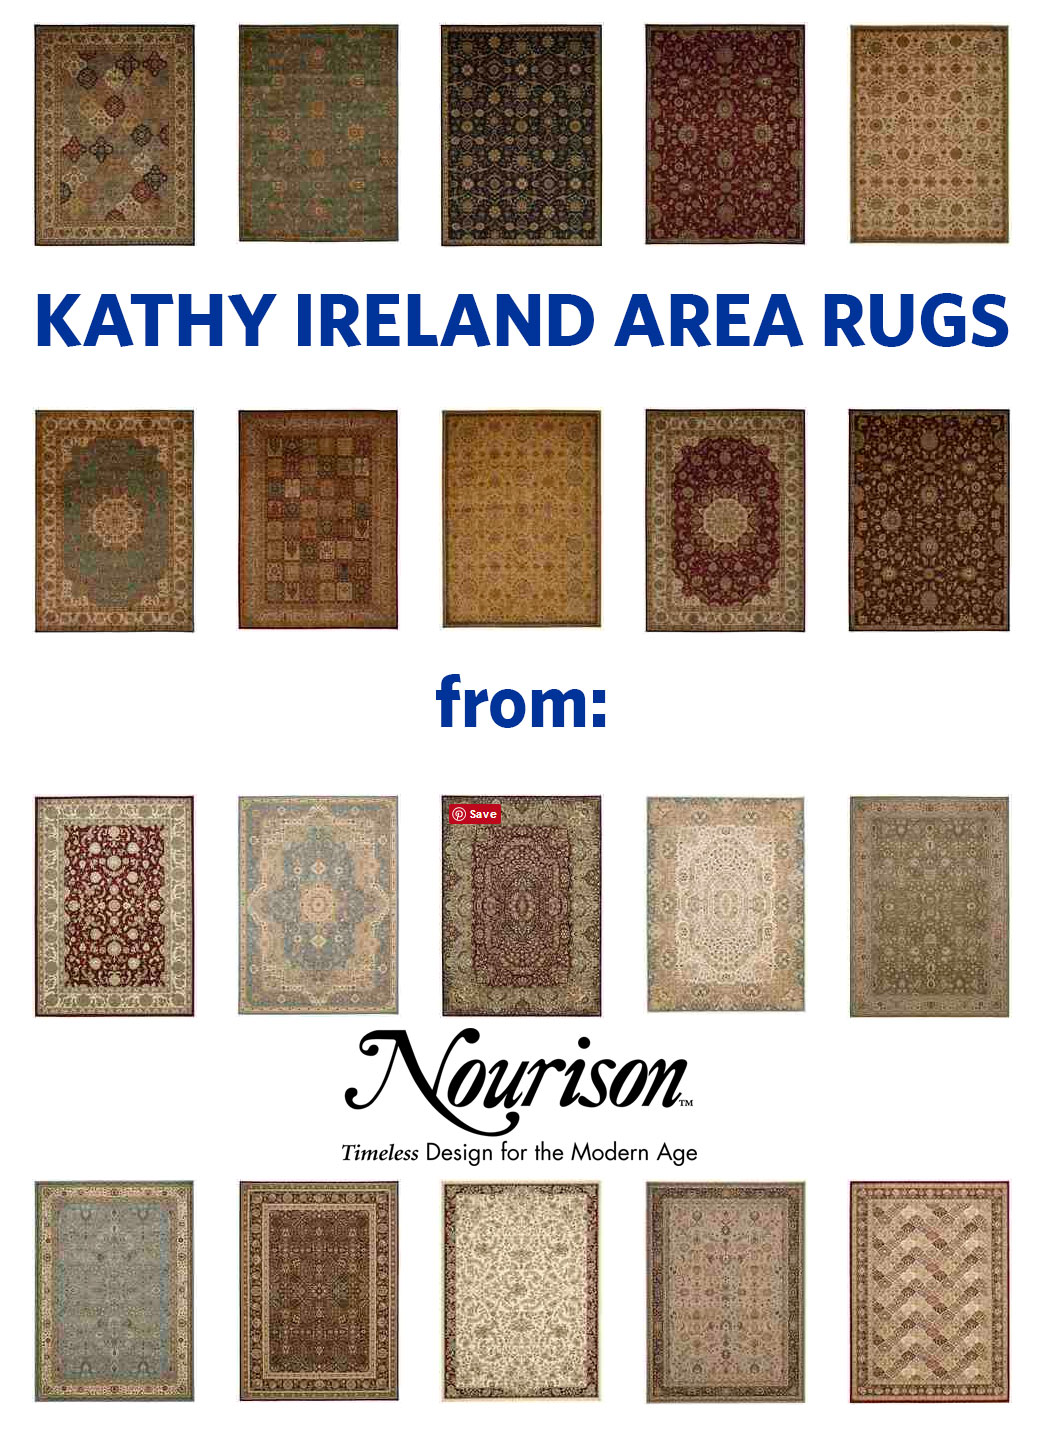 Kathy Ireland Area Rugs